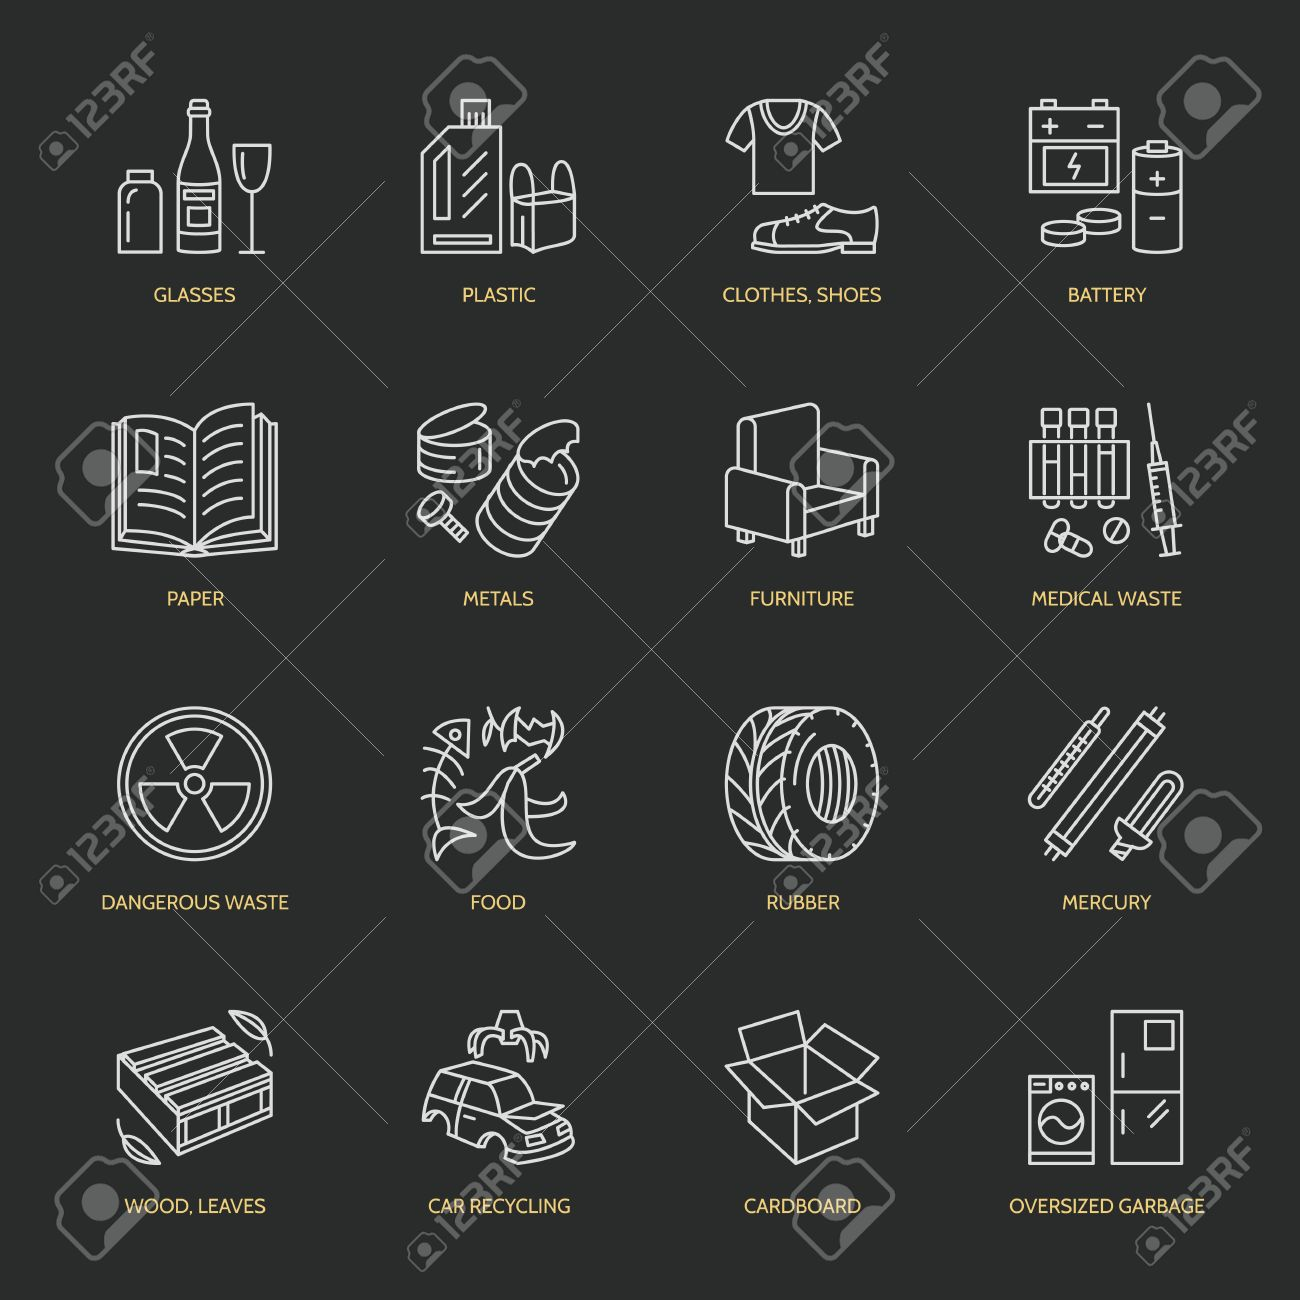 Modern vector thin line icons of waste sorting, recycling. Garbage collection. Recyclable trash - paper, glass, plastic, metal, wood. Linear pictogram for poster, brochure of recycling management. - 66482582